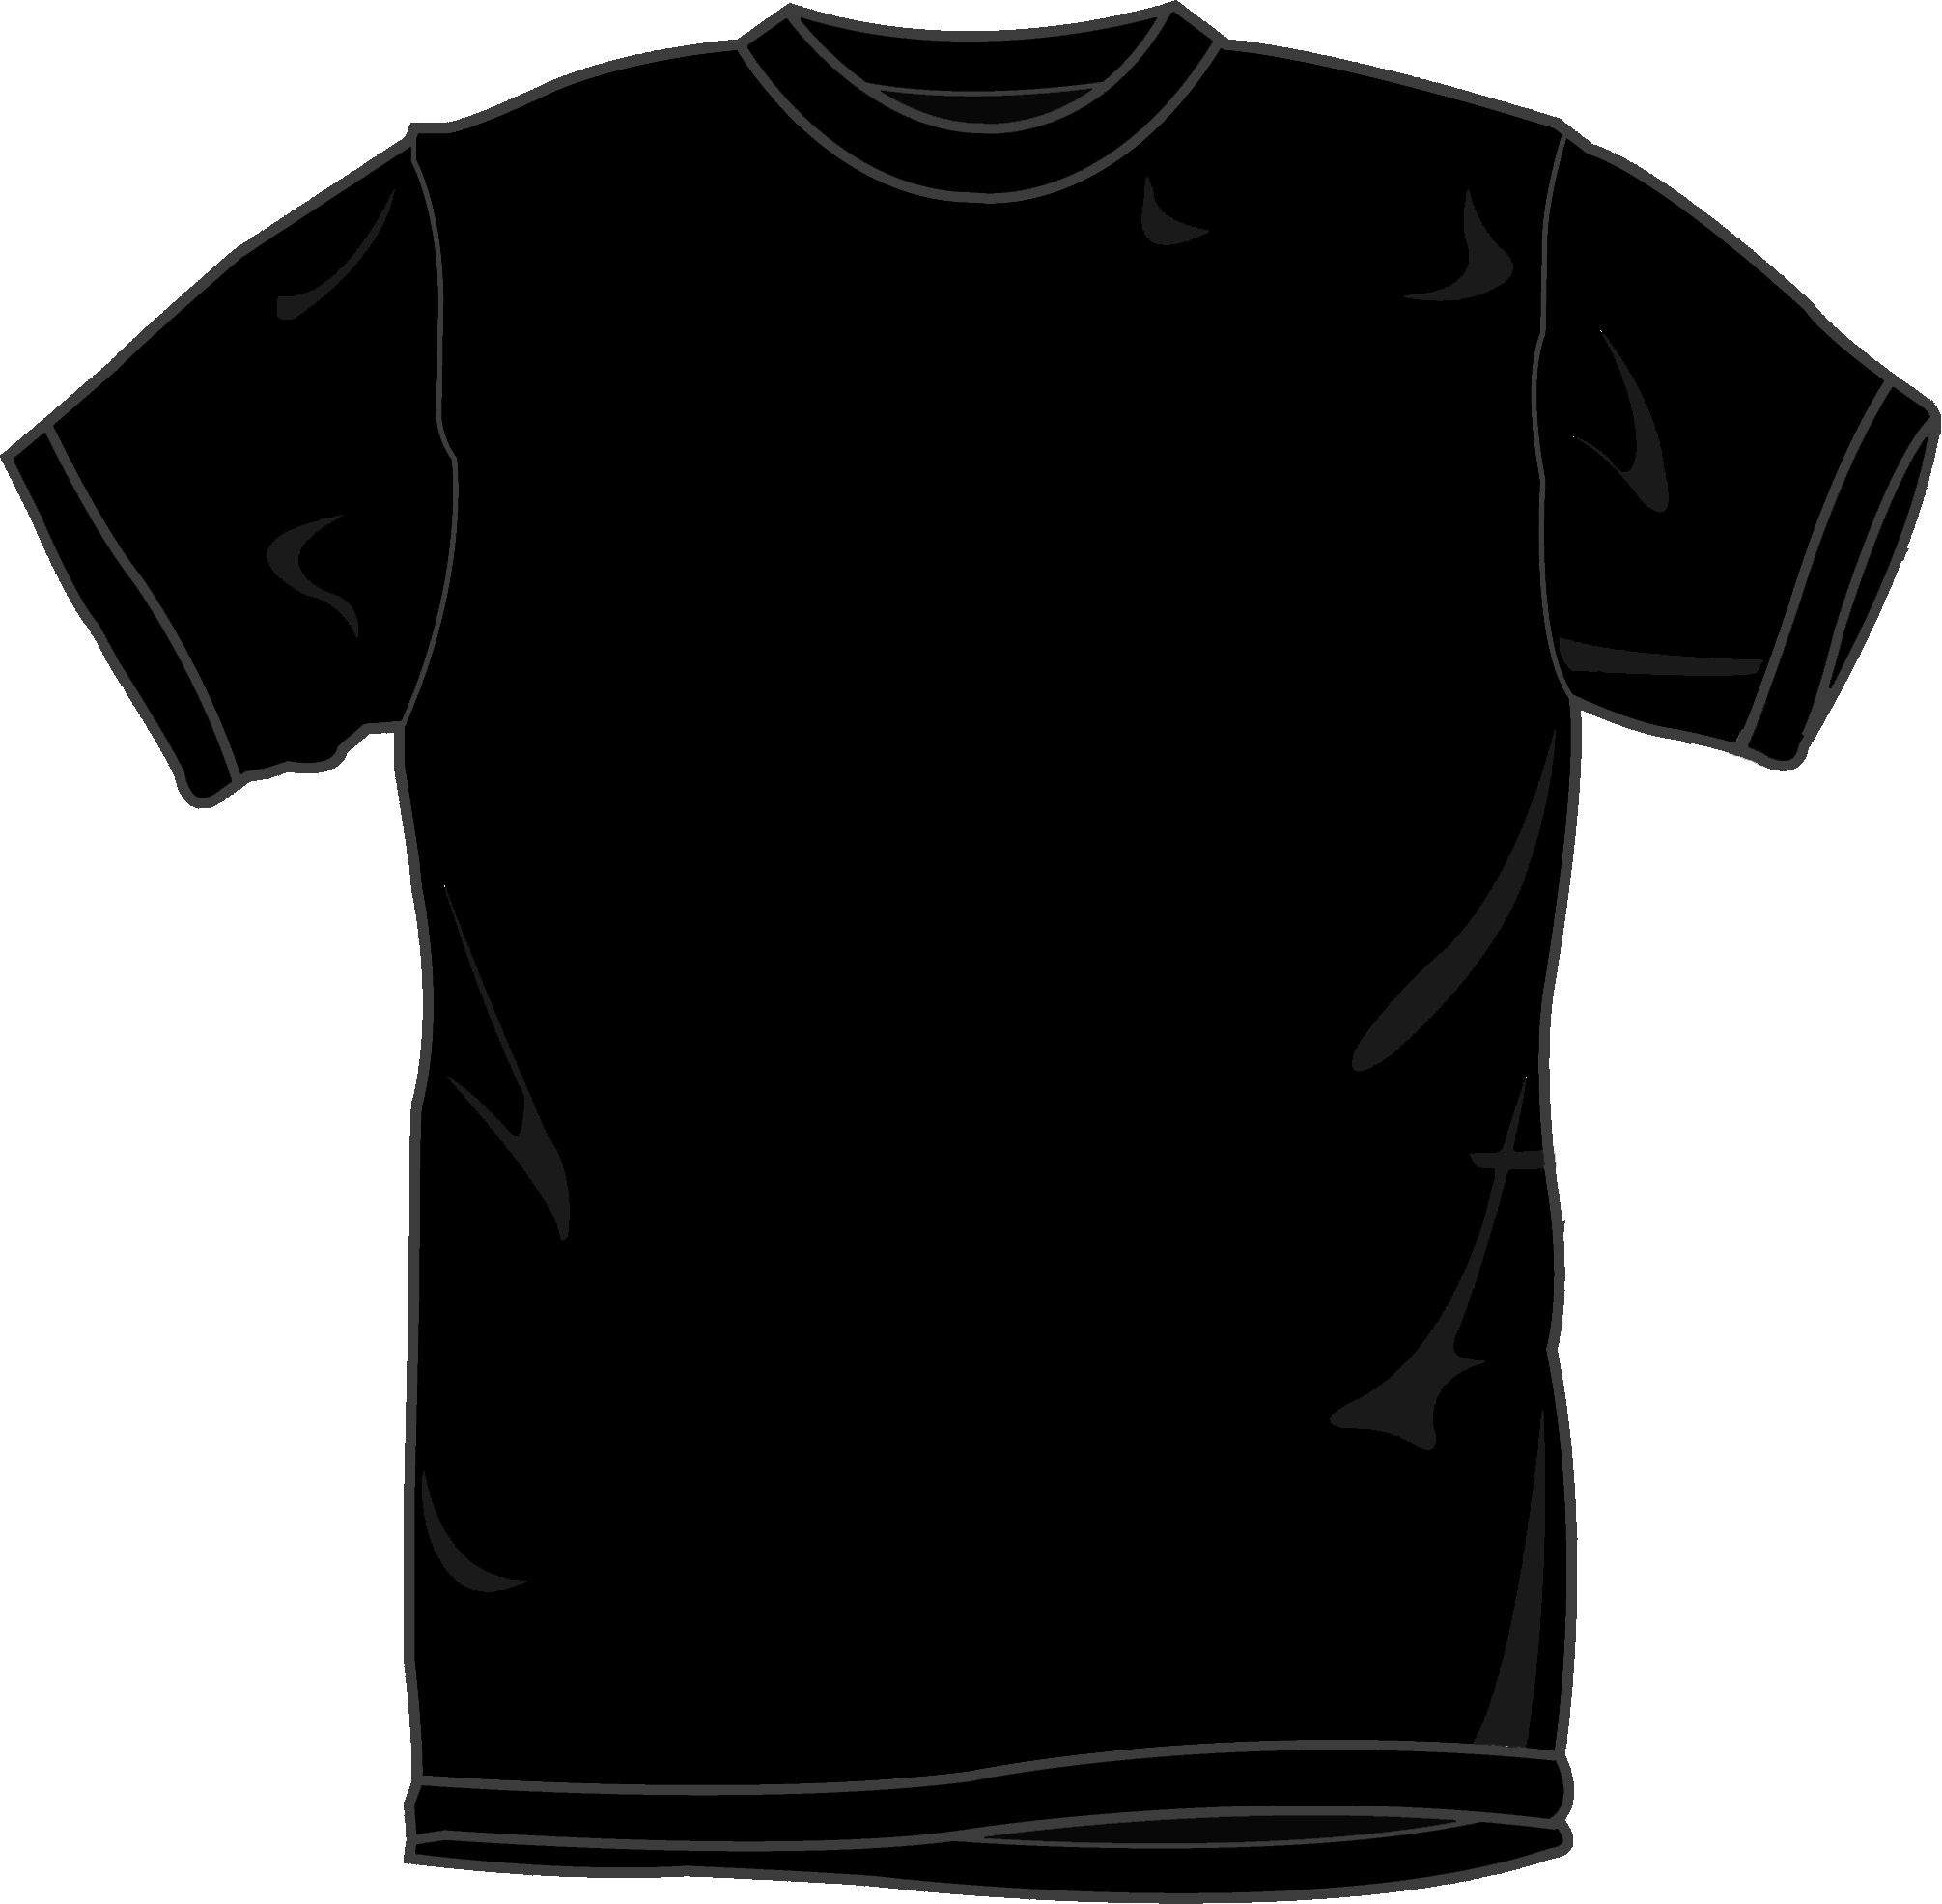 20 vector pocket t shirt black images black t shirt vector art shirt pocket clip art and. Black Bedroom Furniture Sets. Home Design Ideas